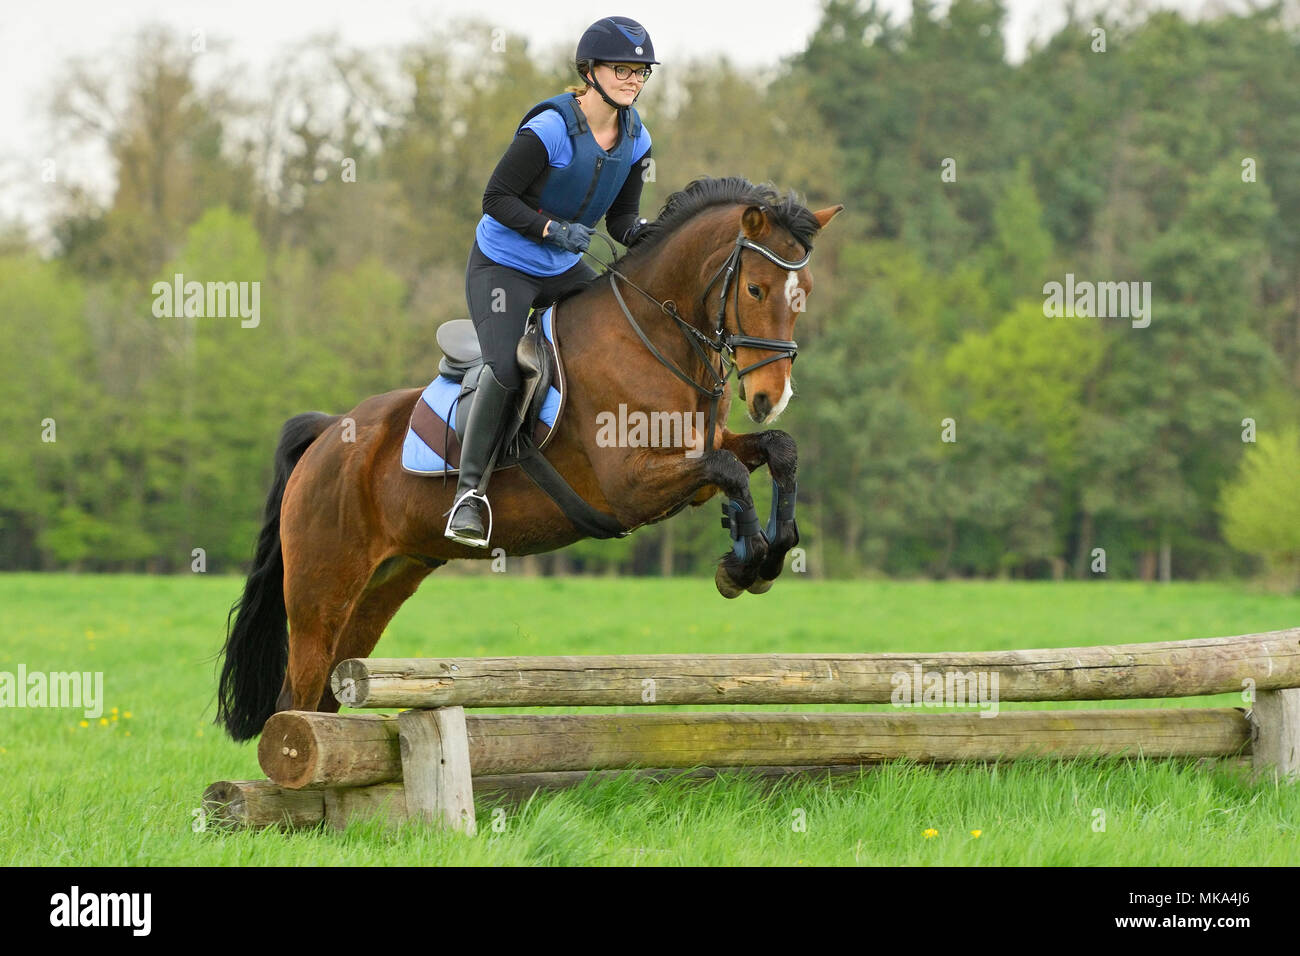 Cross country clinic - Stock Image